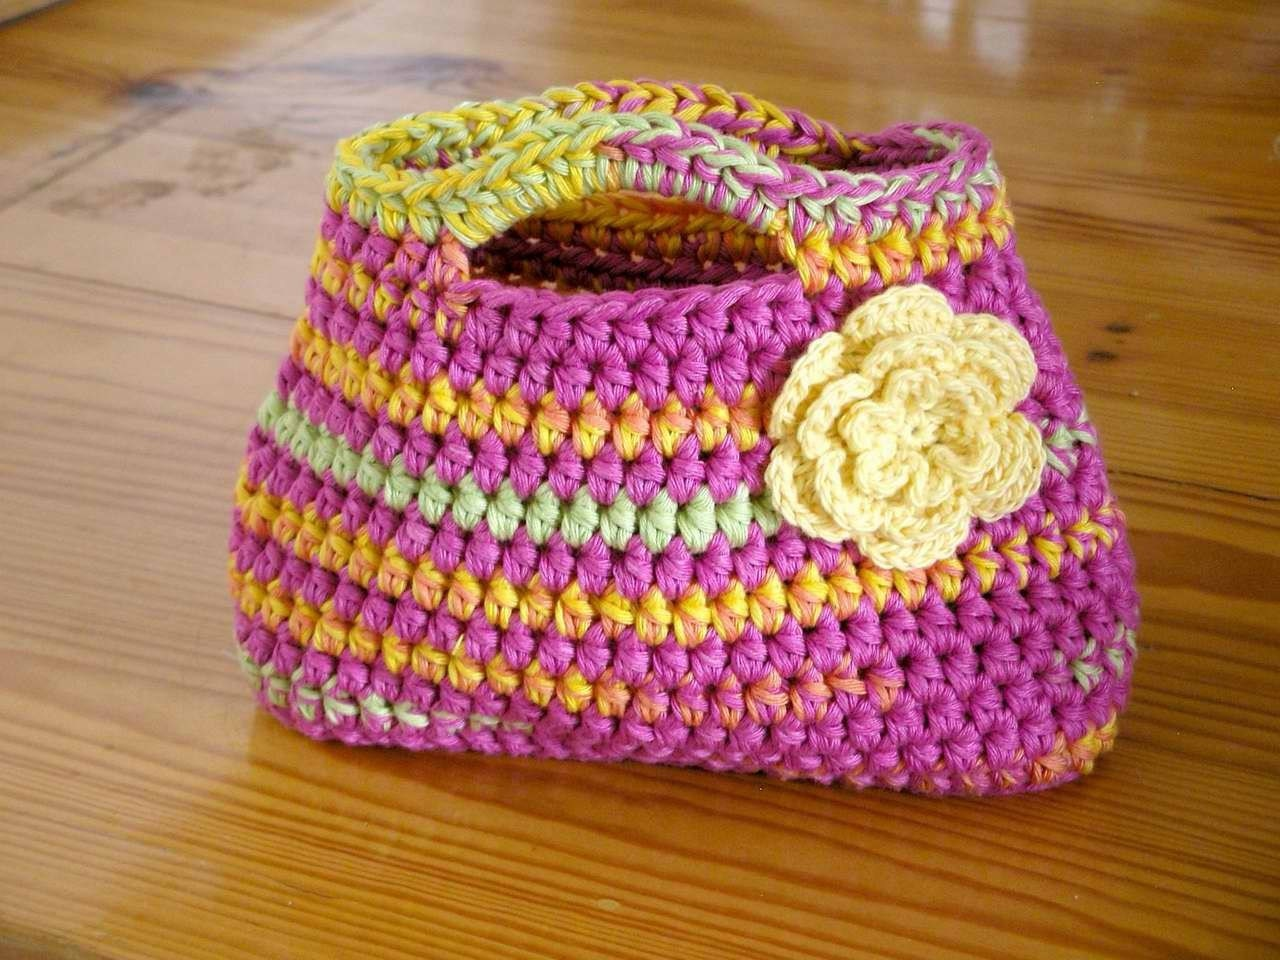 Crochet Patterns For Kids Bags : Easy Peasy Little Kidz Bag Crochet PATTERN by bubnutPatterns